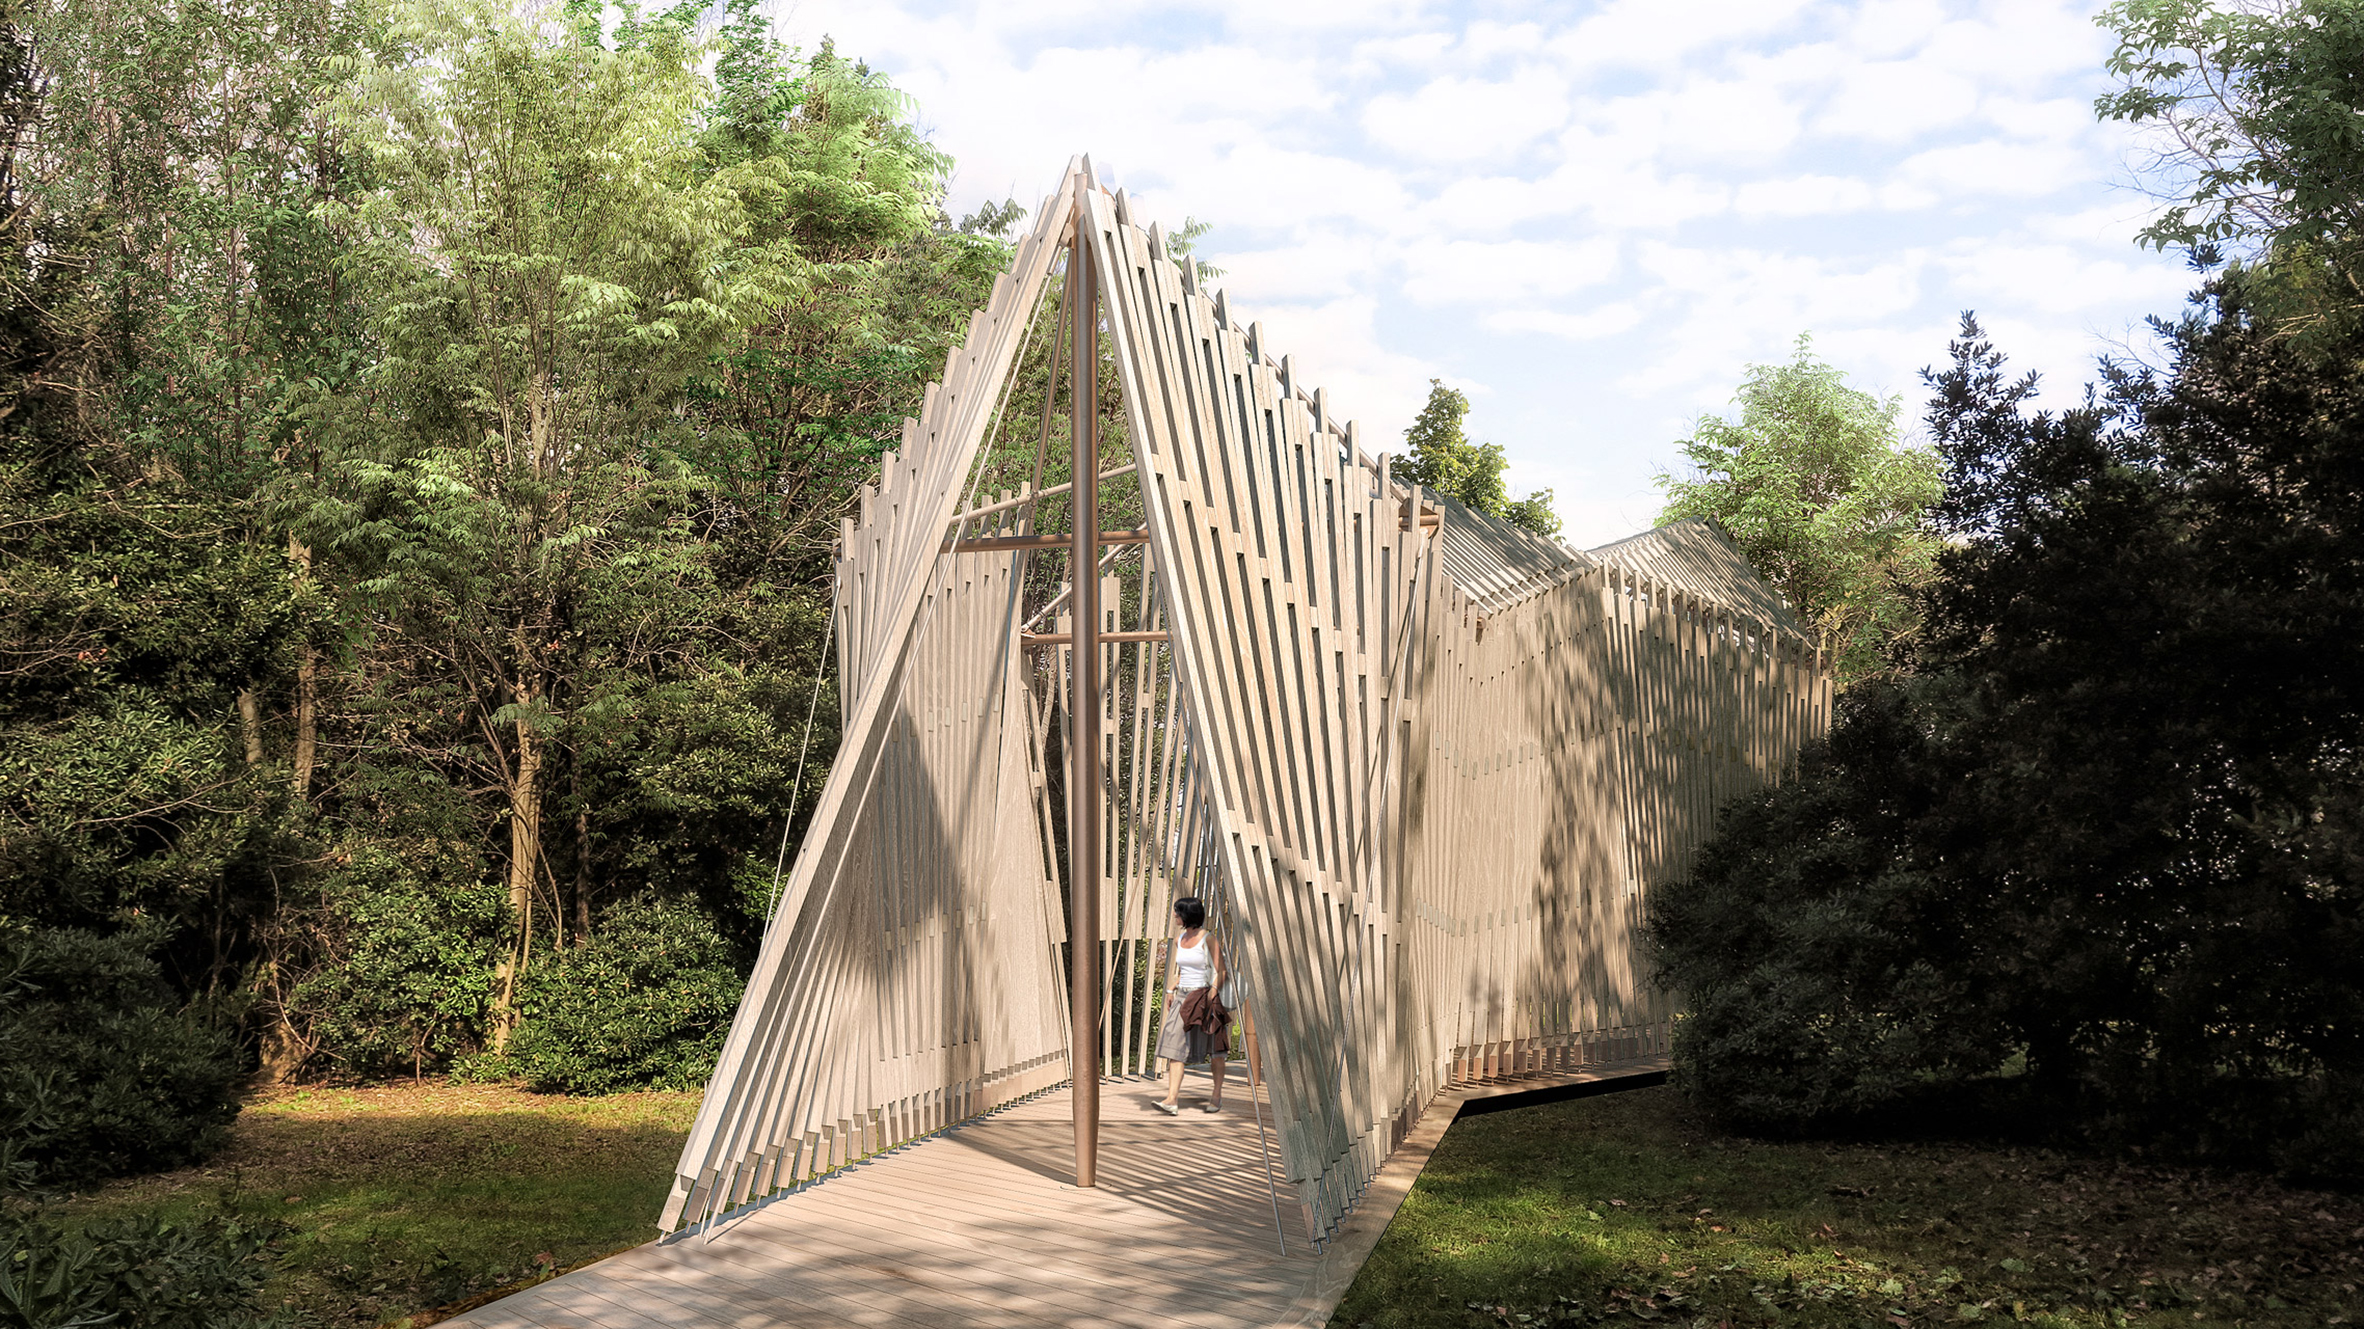 Vatican City's first Venice Biennale pavilion to feature chapels by Foster, Souto de Moura and more